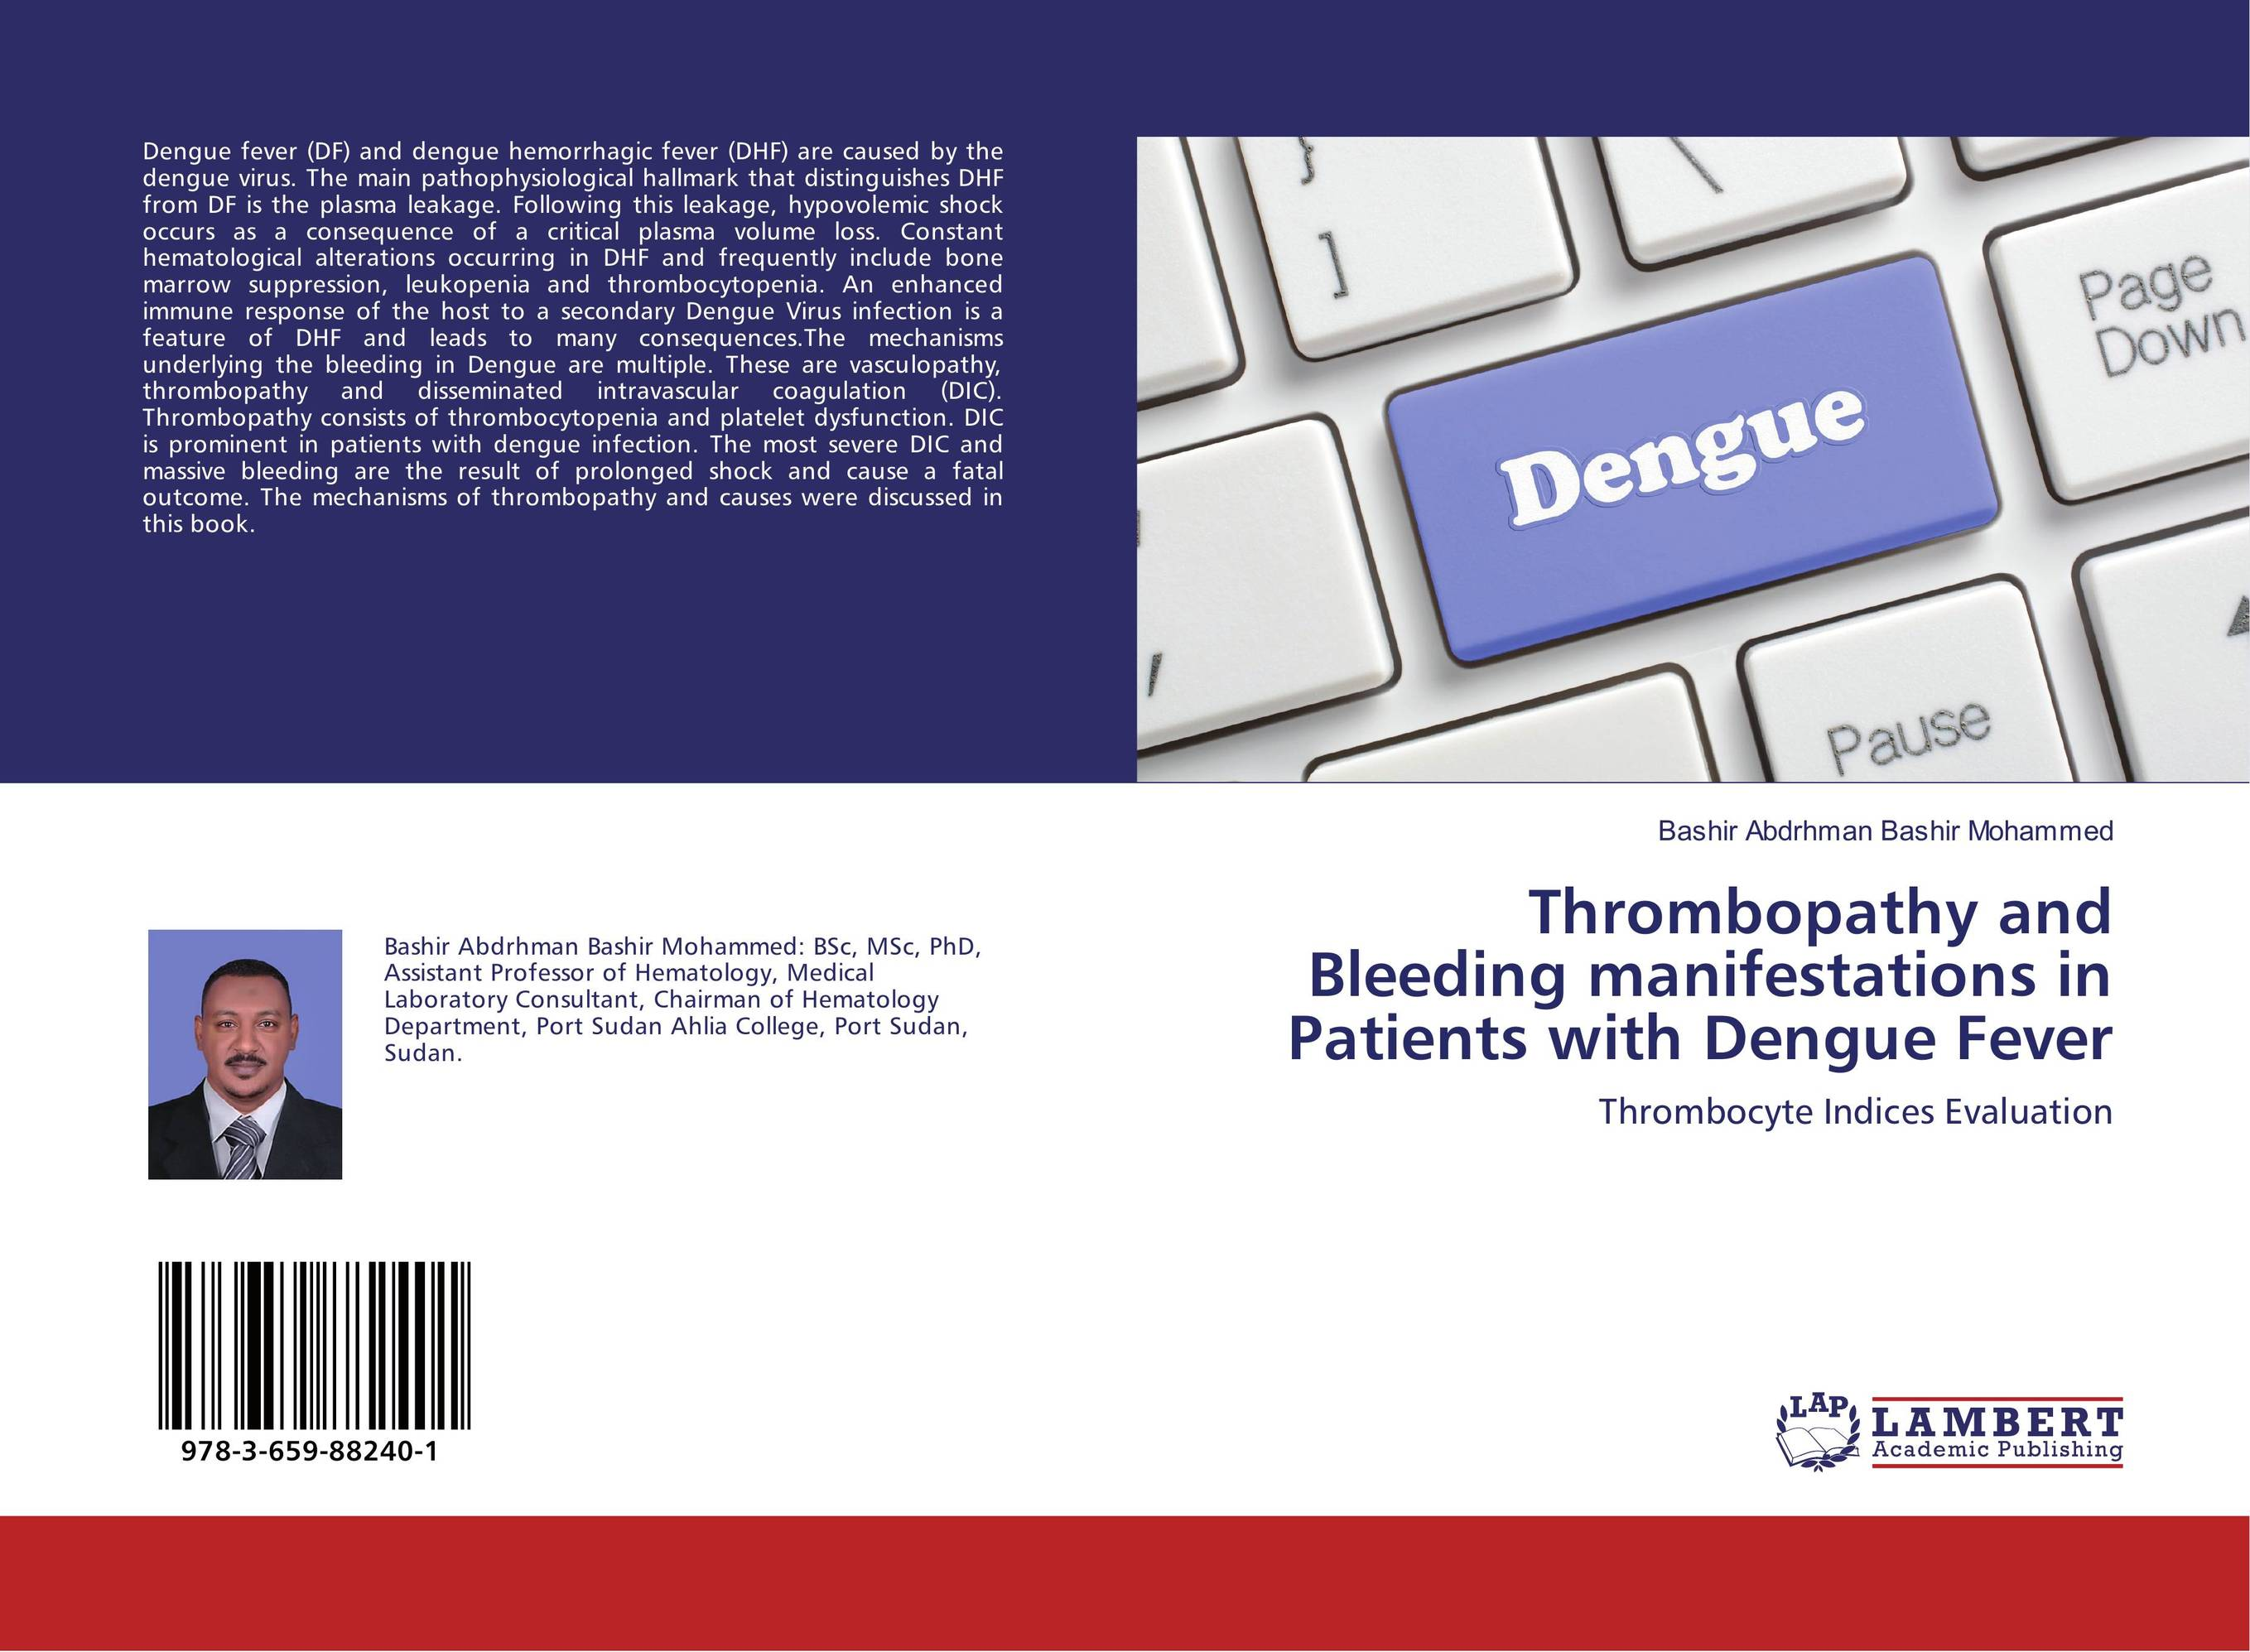 Thrombopathy and Bleeding manifestations in Patients with Dengue Fever